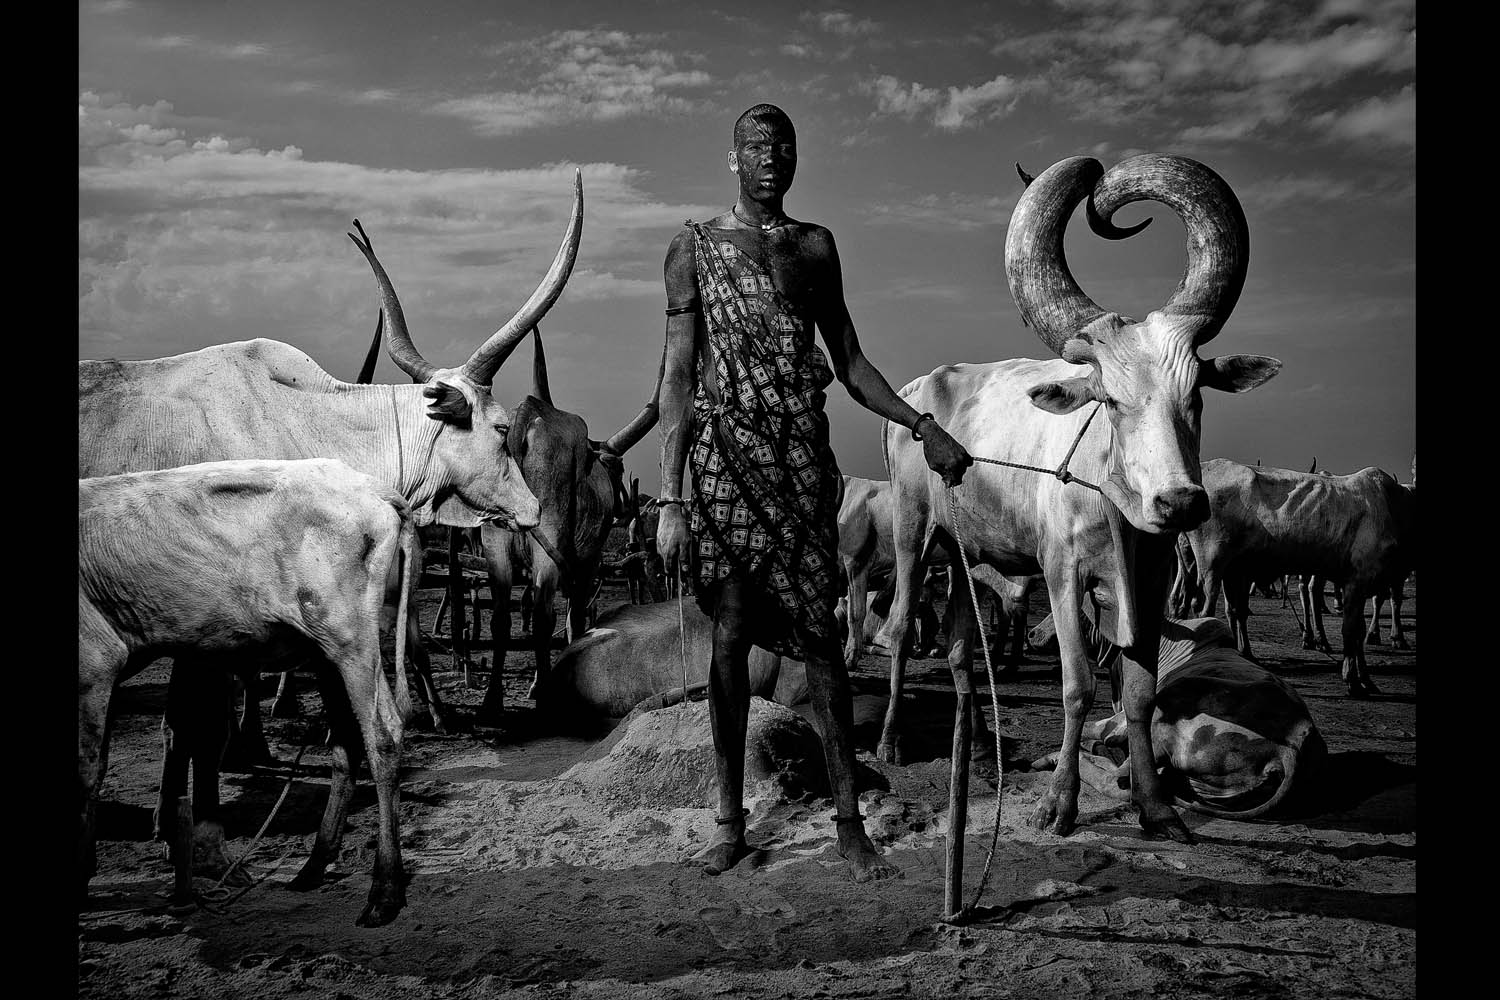 Mundari tribe members are especially vulnerable to the threat of land mines and other unexploded ordnance since they move around the country frequently to feed and water their cattle.